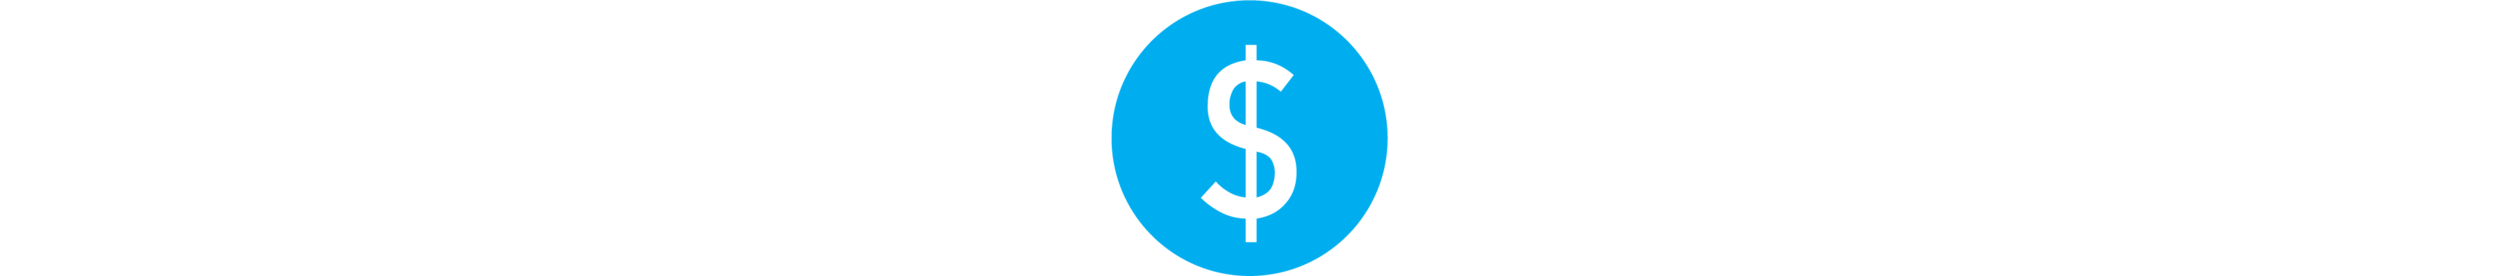 icon_dollar_wide.png